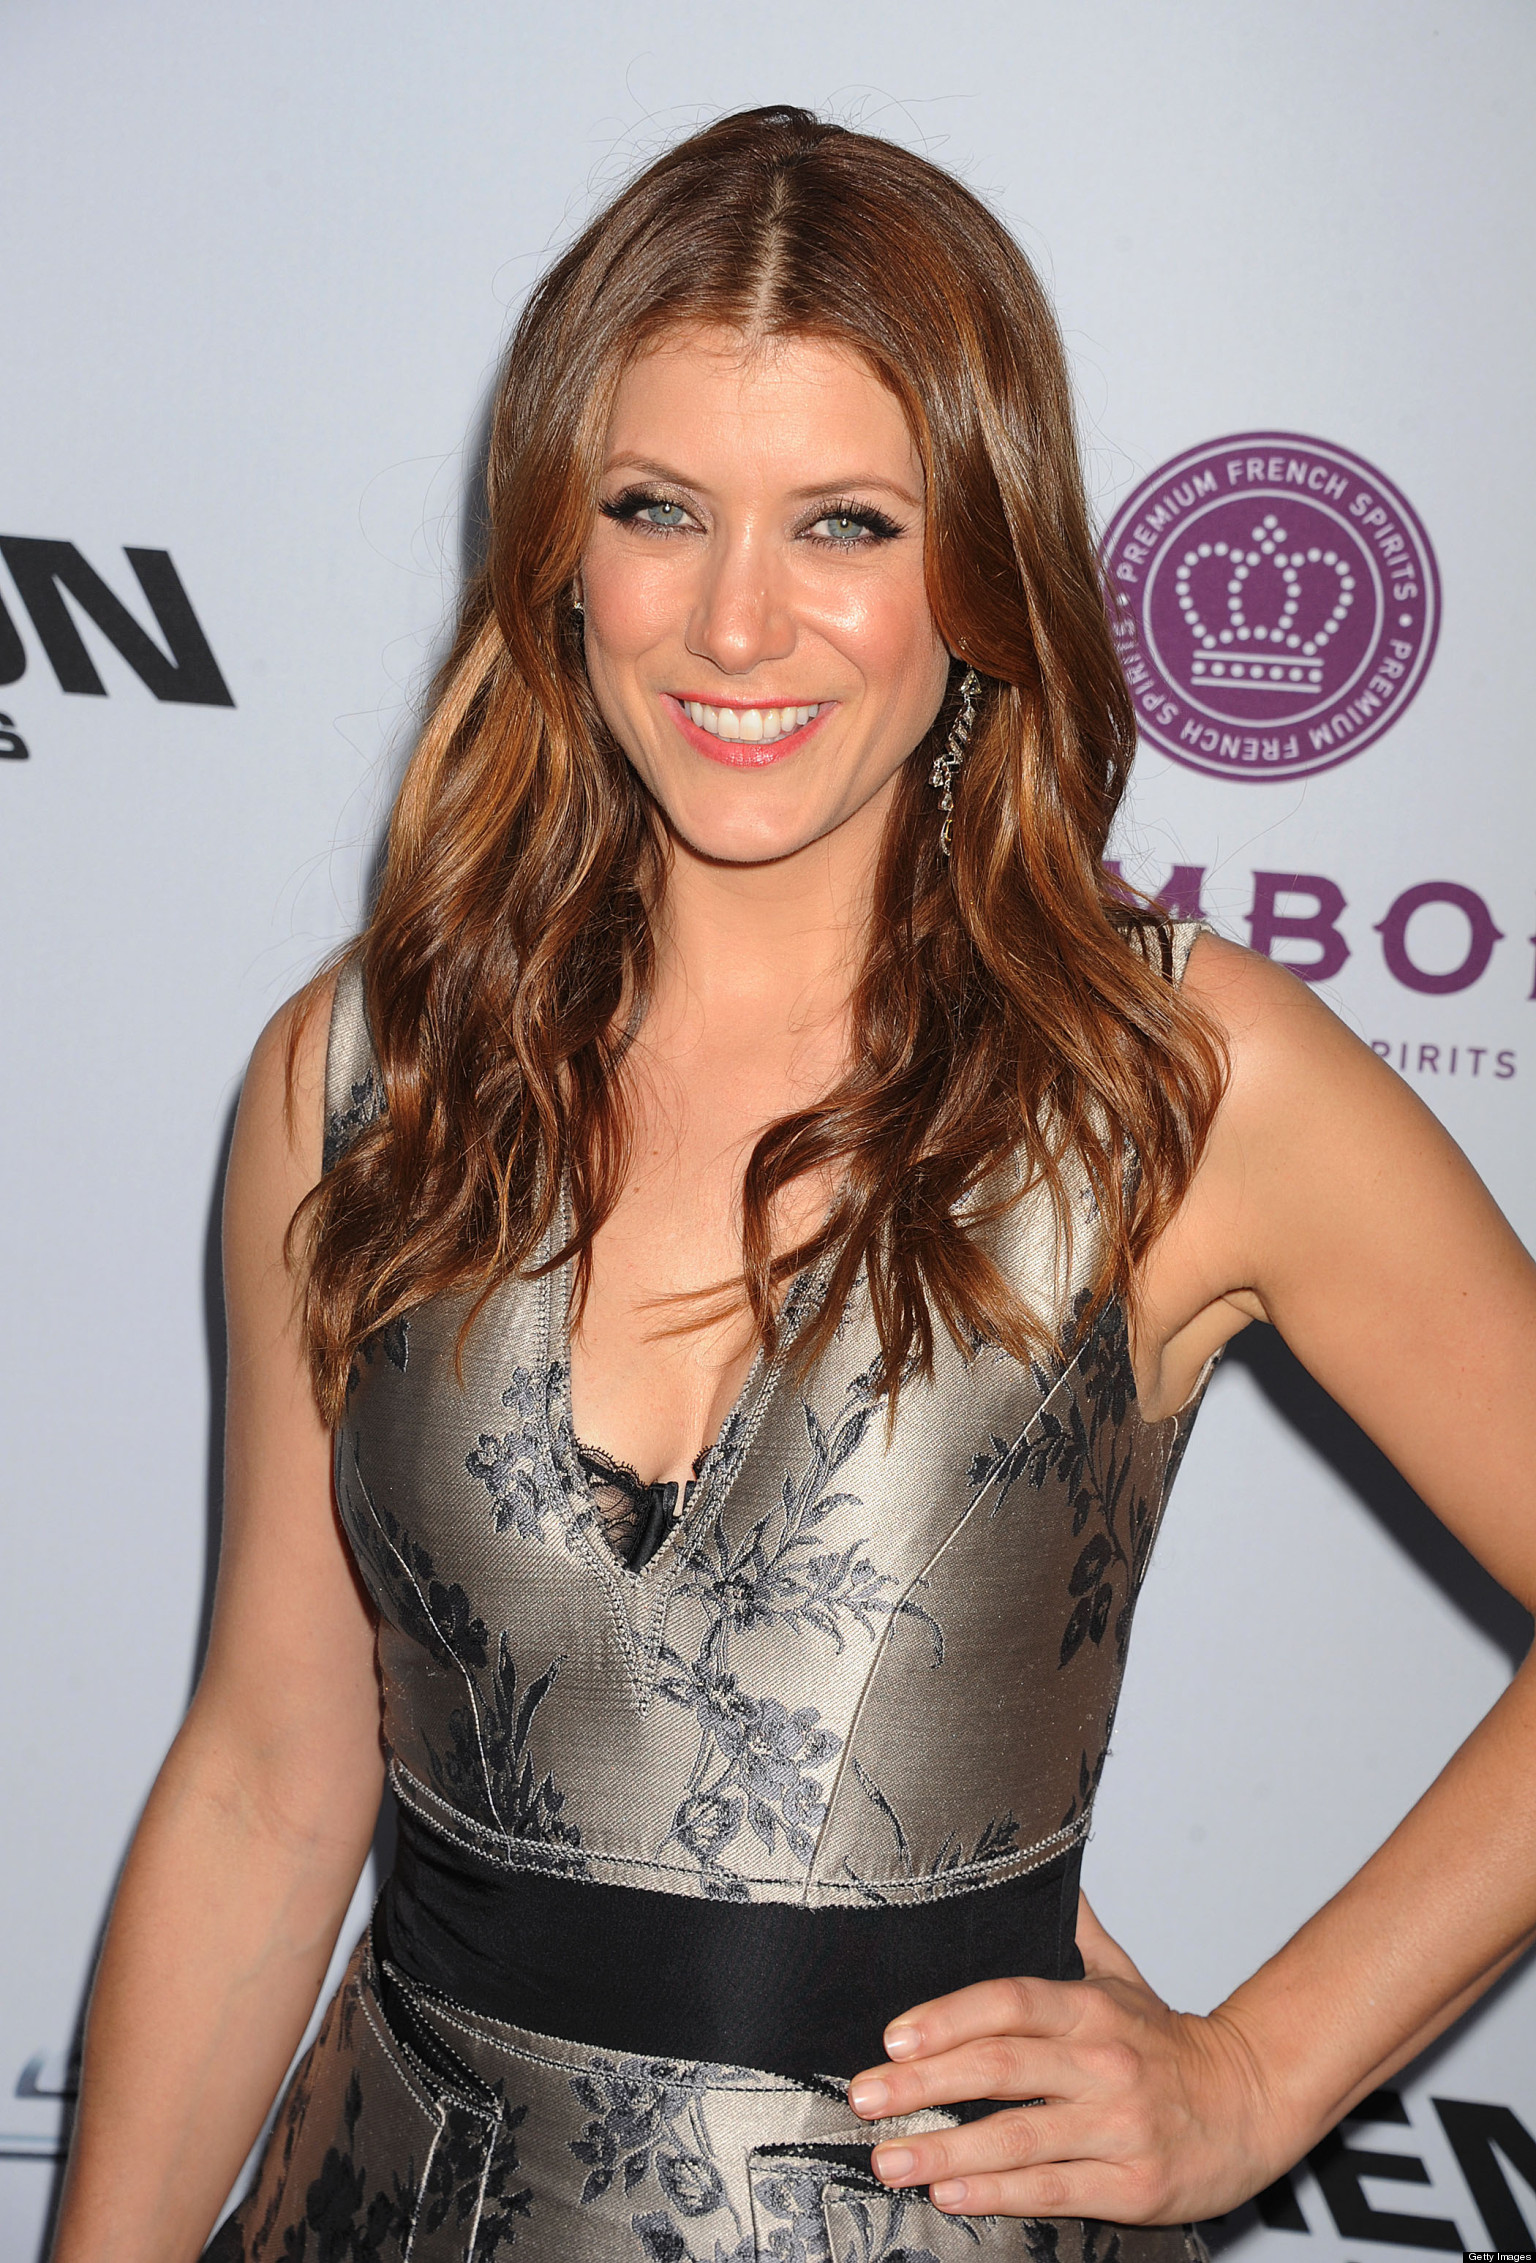 kate walsh come homekate walsh instagram, kate walsh right back, kate walsh broken glass, kate walsh young, kate walsh grey's anatomy, kate walsh and catherine deneuve, kate walsh boyfriend perfume, kate walsh wiki, kate walsh makeup, kate walsh and wendie malick, kate walsh chicago, kate walsh trevor davis, kate walsh hair color, kate walsh come home, kate walsh house, kate walsh music, kate walsh periscope, kate walsh vocal, kate walsh peppermint radio, kate walsh interview